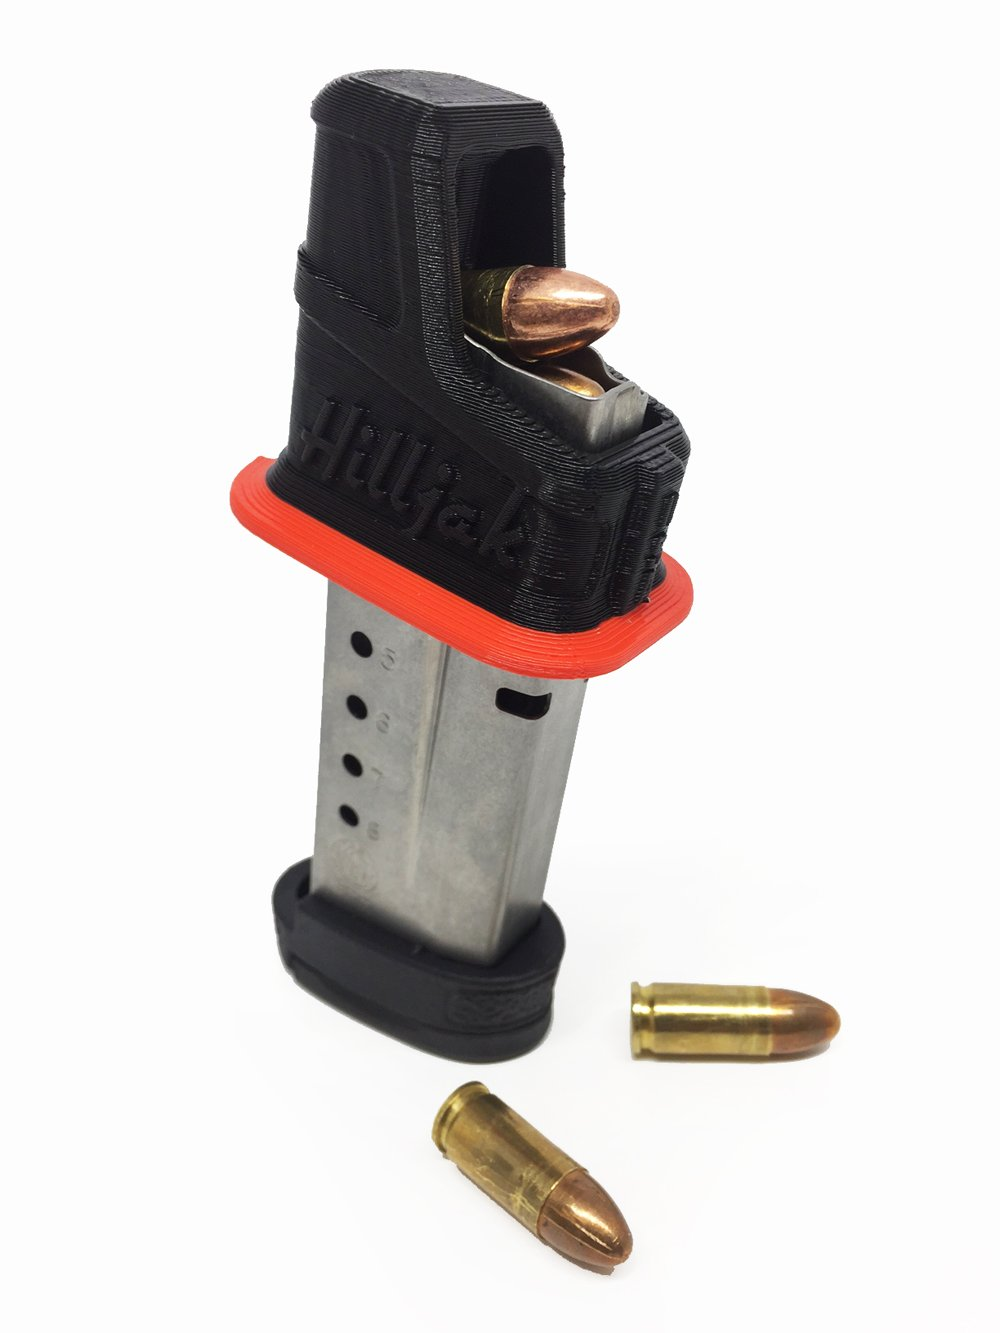 Smith & Wesson M&P Shield 9mm single-stack magazine loader by Hilljak - Red Stripe